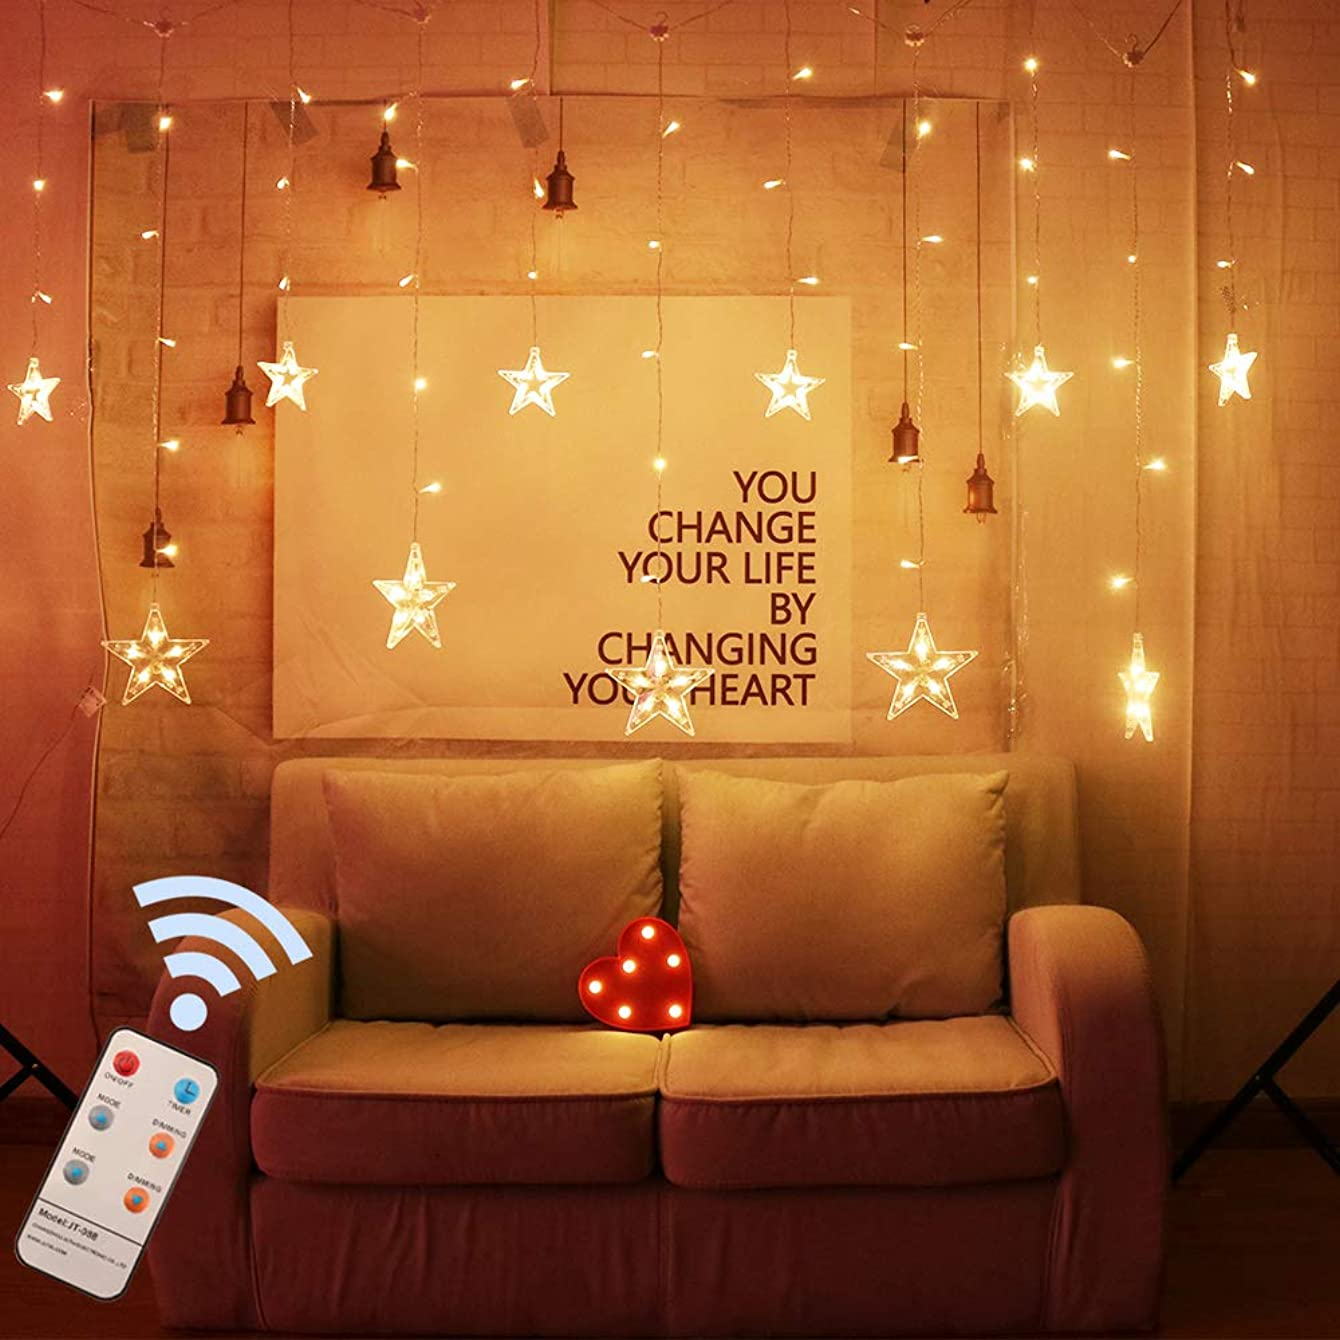 Obrecis 12-Stars Curtain Lights 108 LED 8 Modes Twinkle Star String Window Lights, Remote Control Icicle Fairy Light for Wedding Party Home Christmas Decorations-7.2ft x 3.2ft/1.7ft(Warm White)